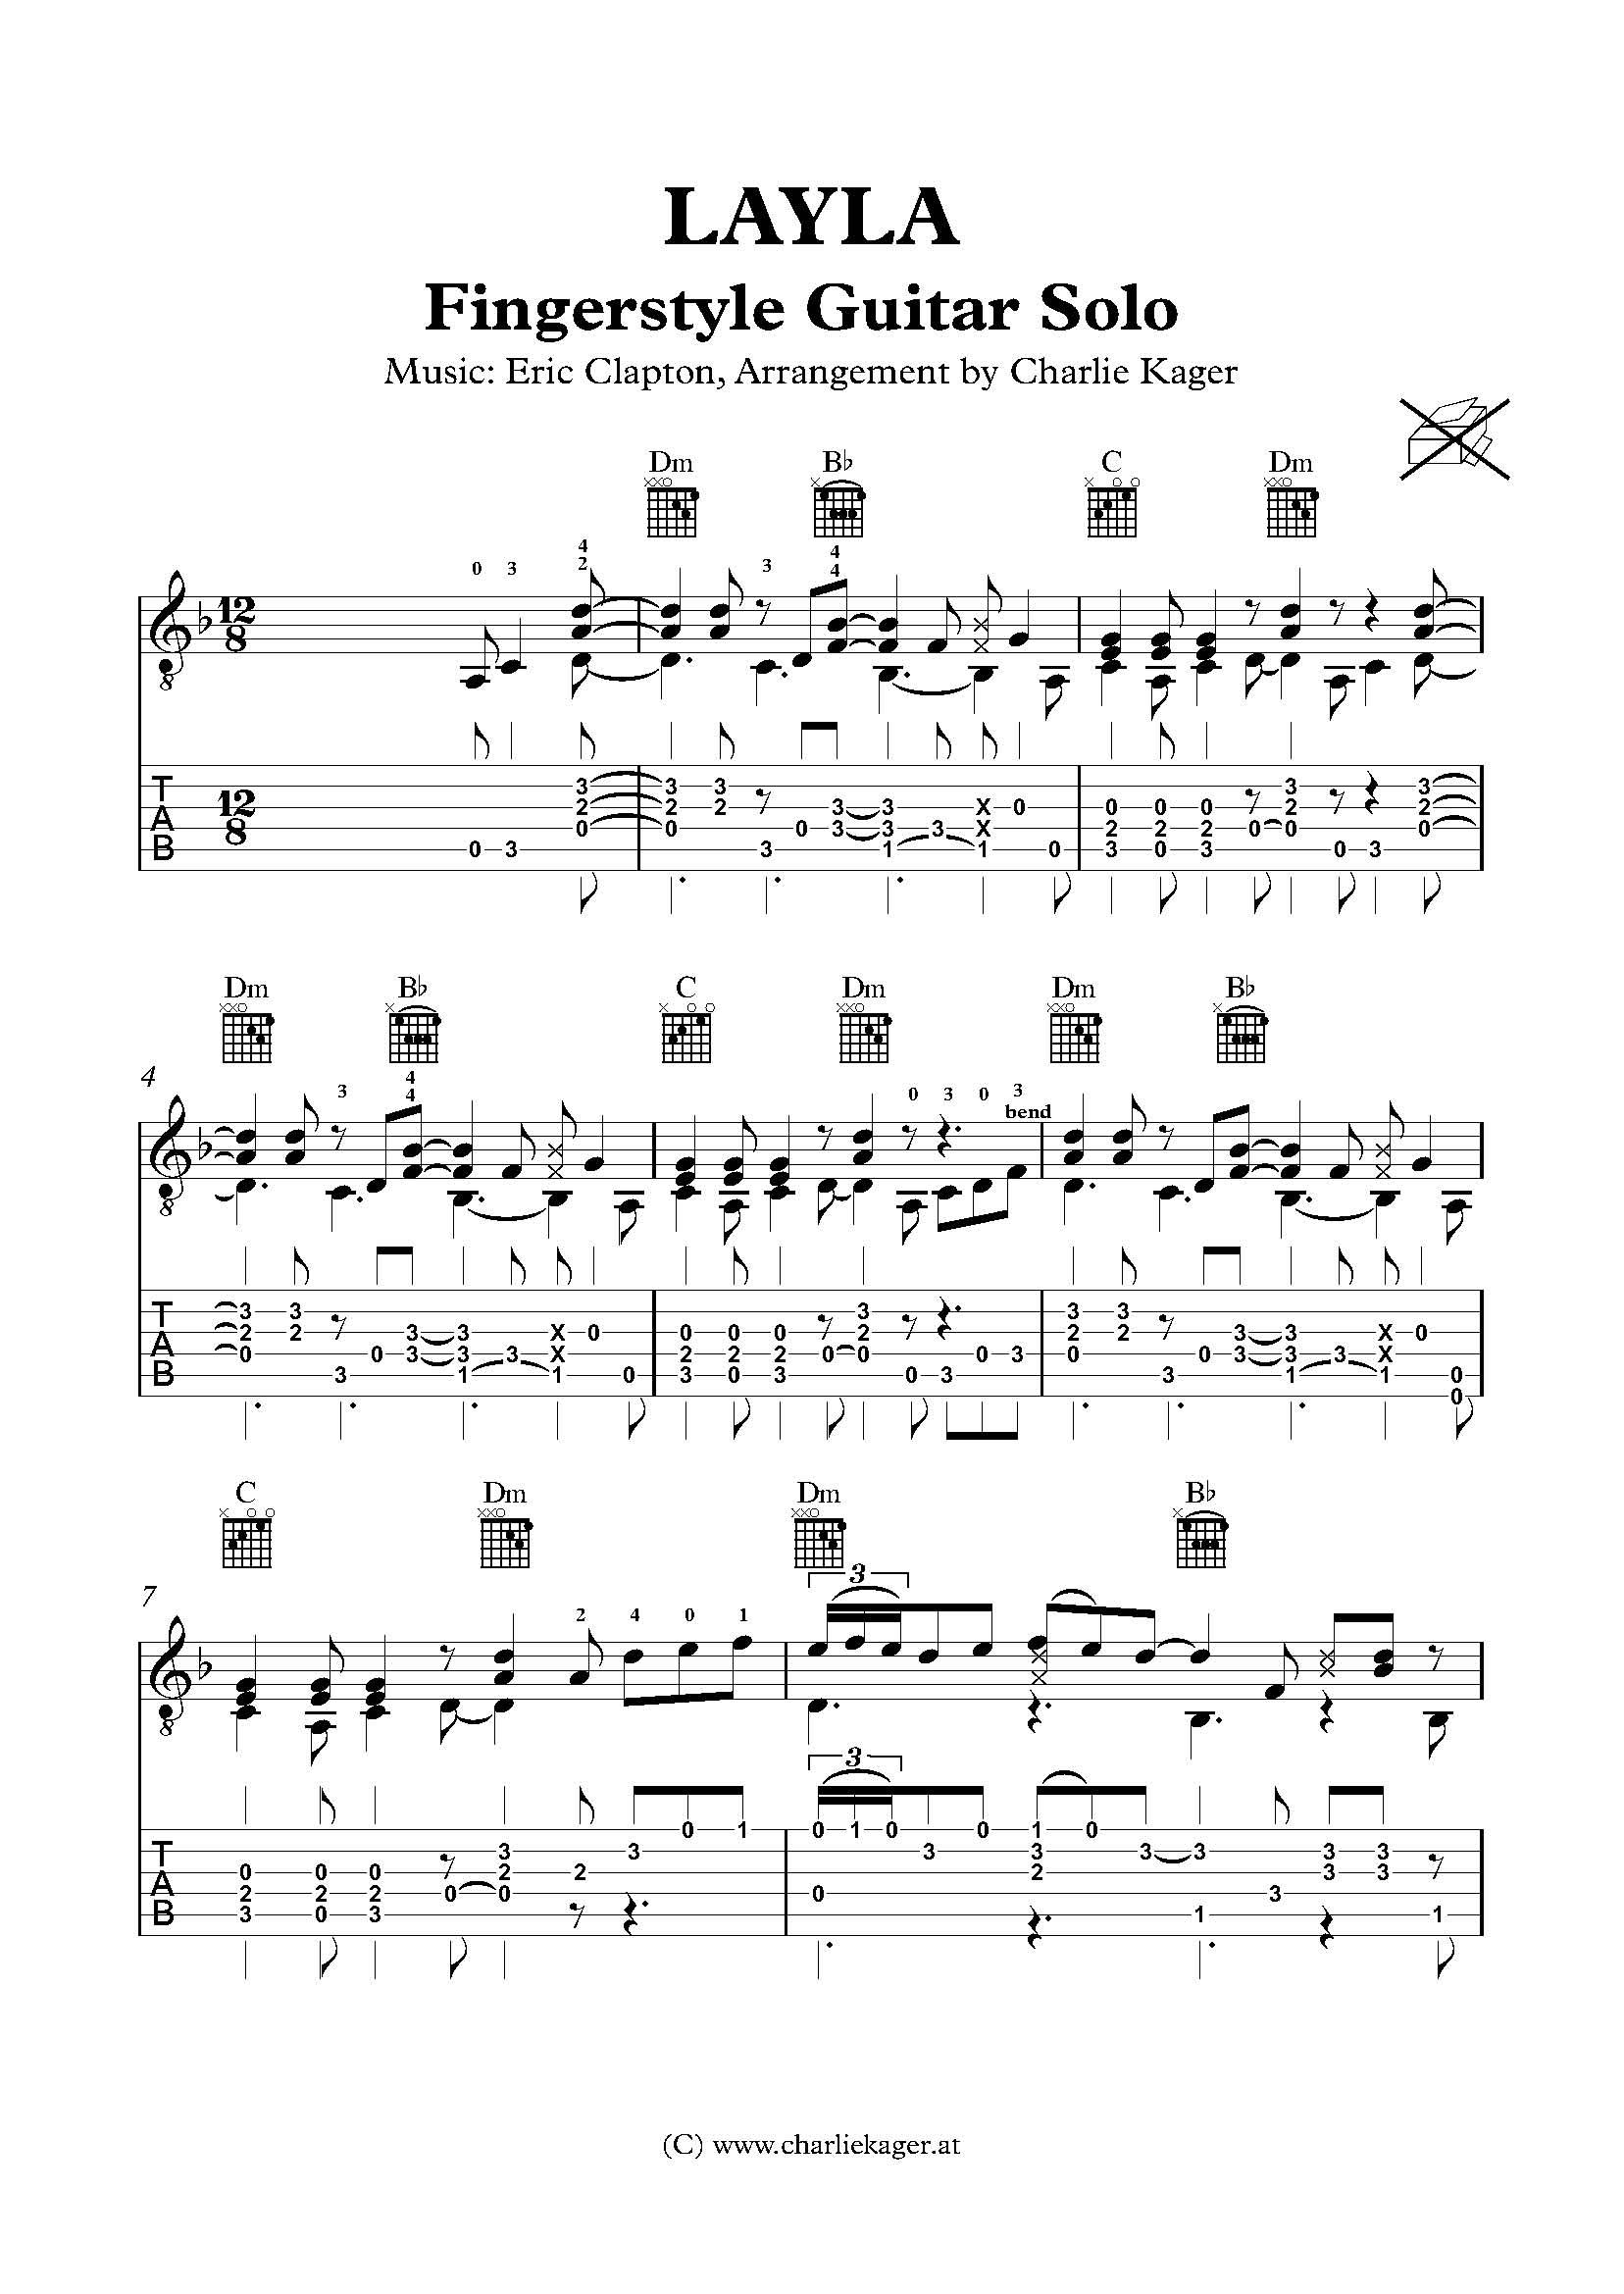 Pin By Carrie Melton On Music Pinterest Guitar Music And Sheet